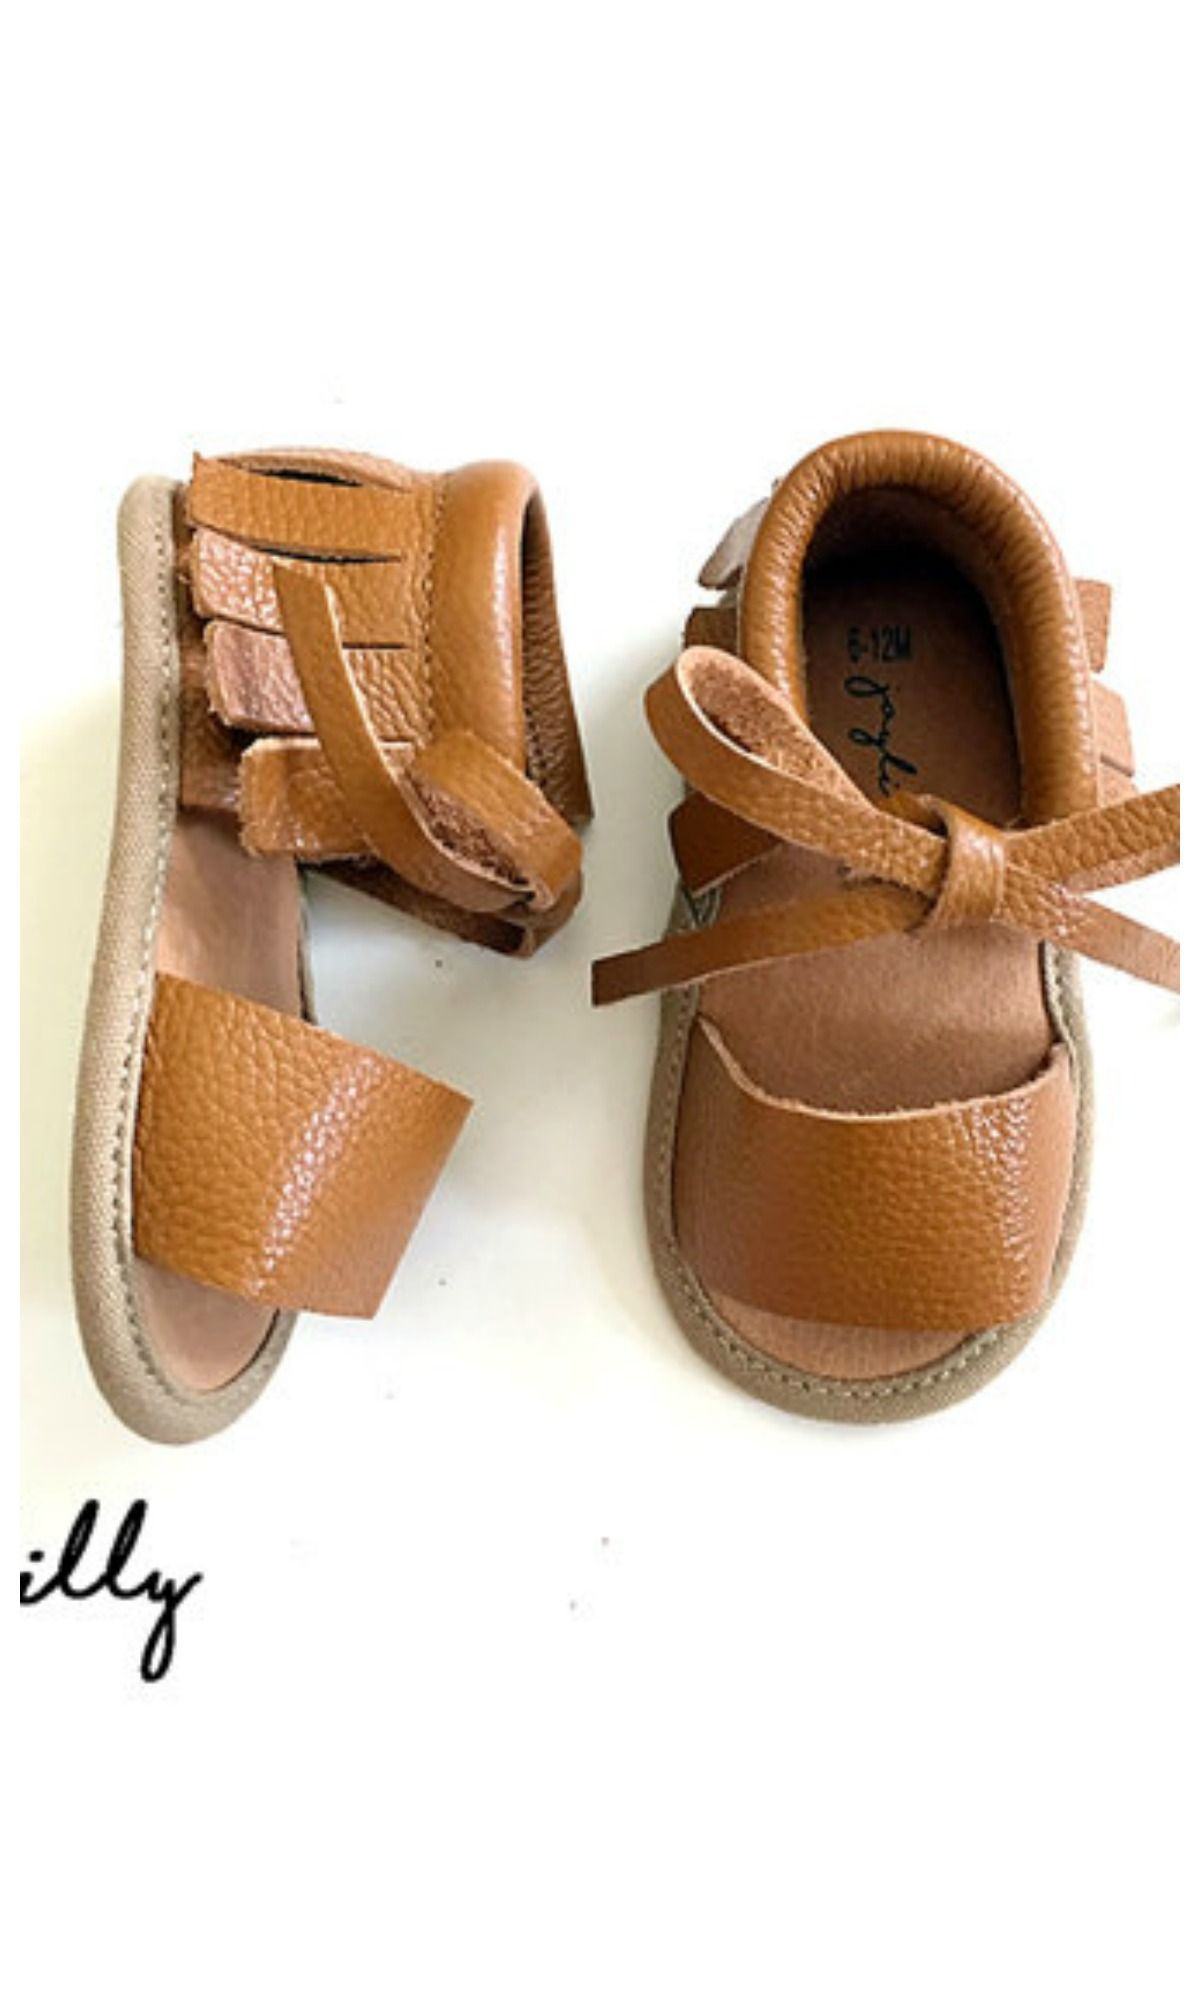 2f019c3e6 Joylilly moccasin sandals BROWN Baby Sandals